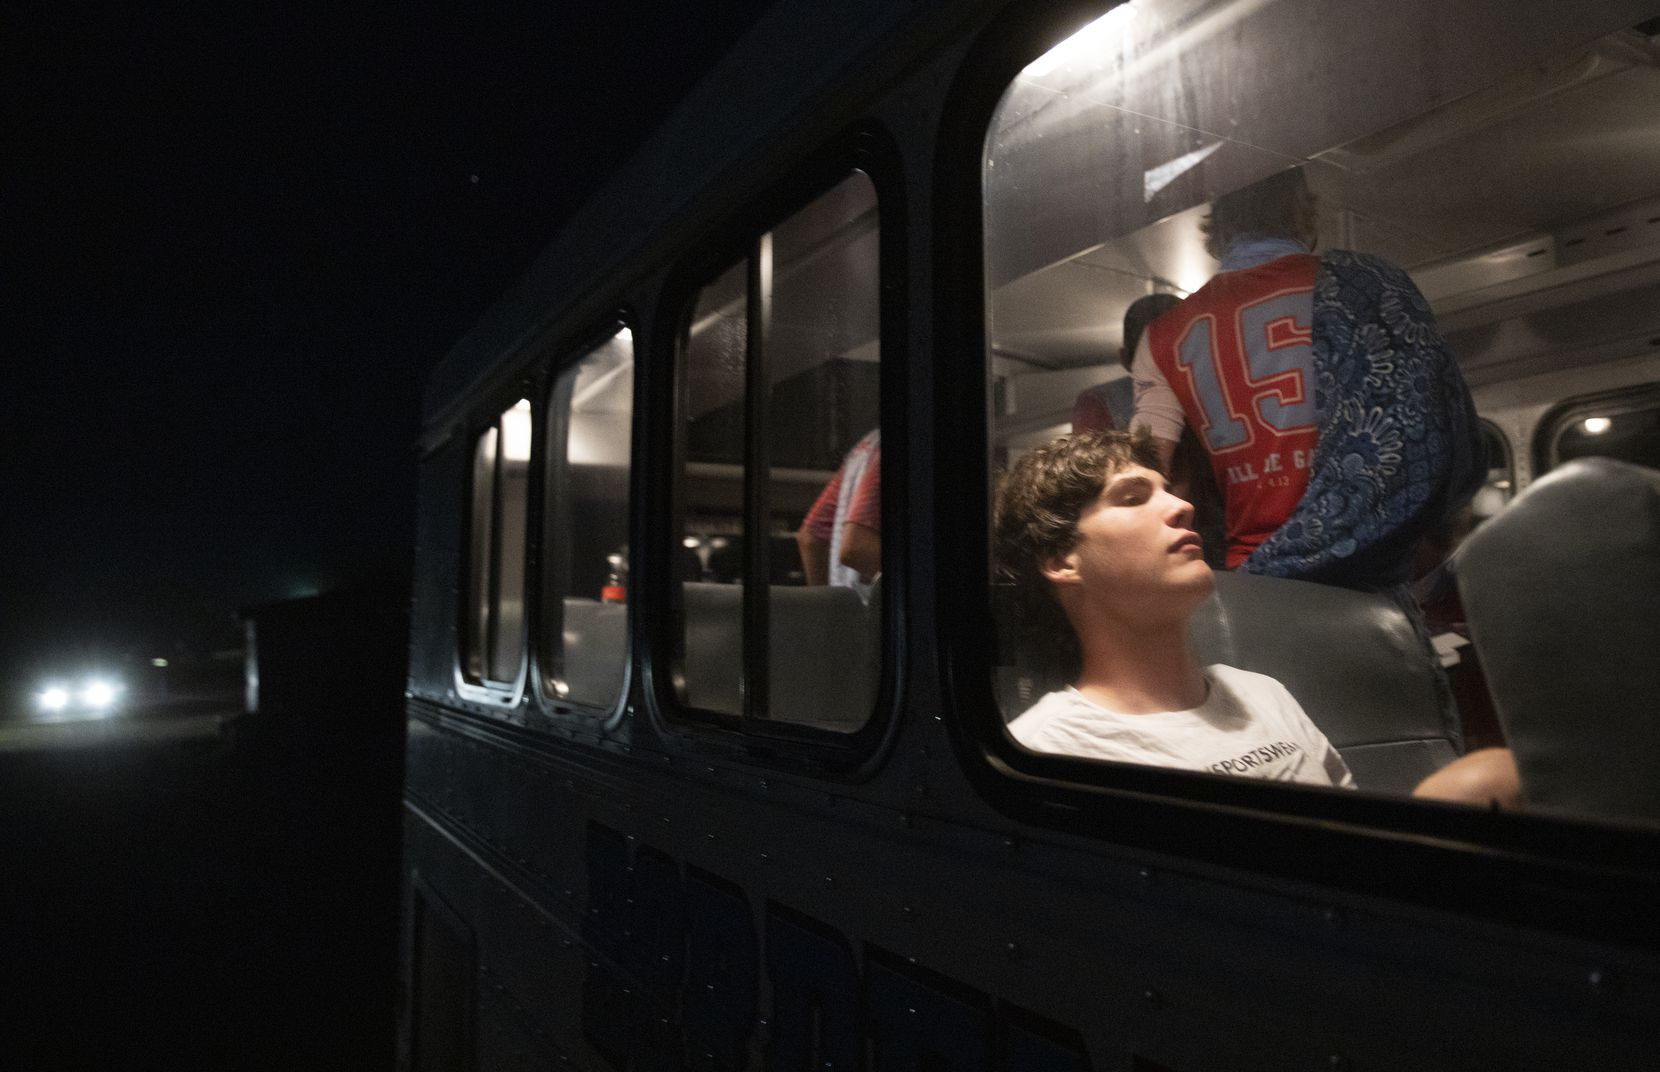 Borden County High School football players board the bus after winning their first season game against Calvert at Longhorn Stadium on Aug. 27, 2020 in Gordon.